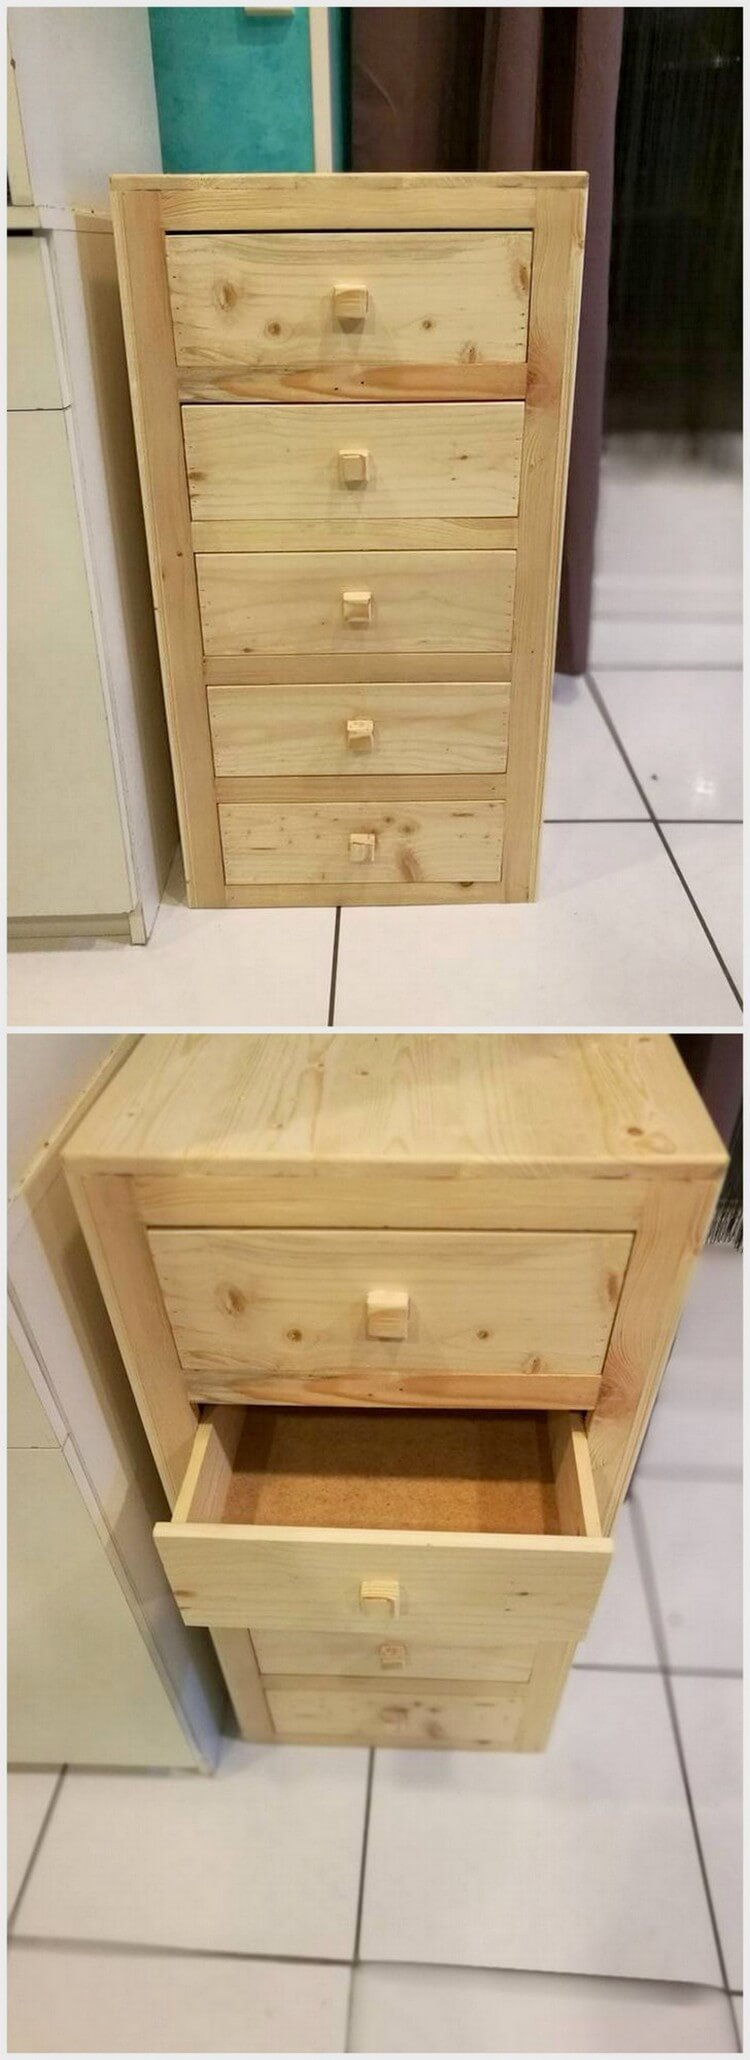 Mini Pallet Chest of Drawers